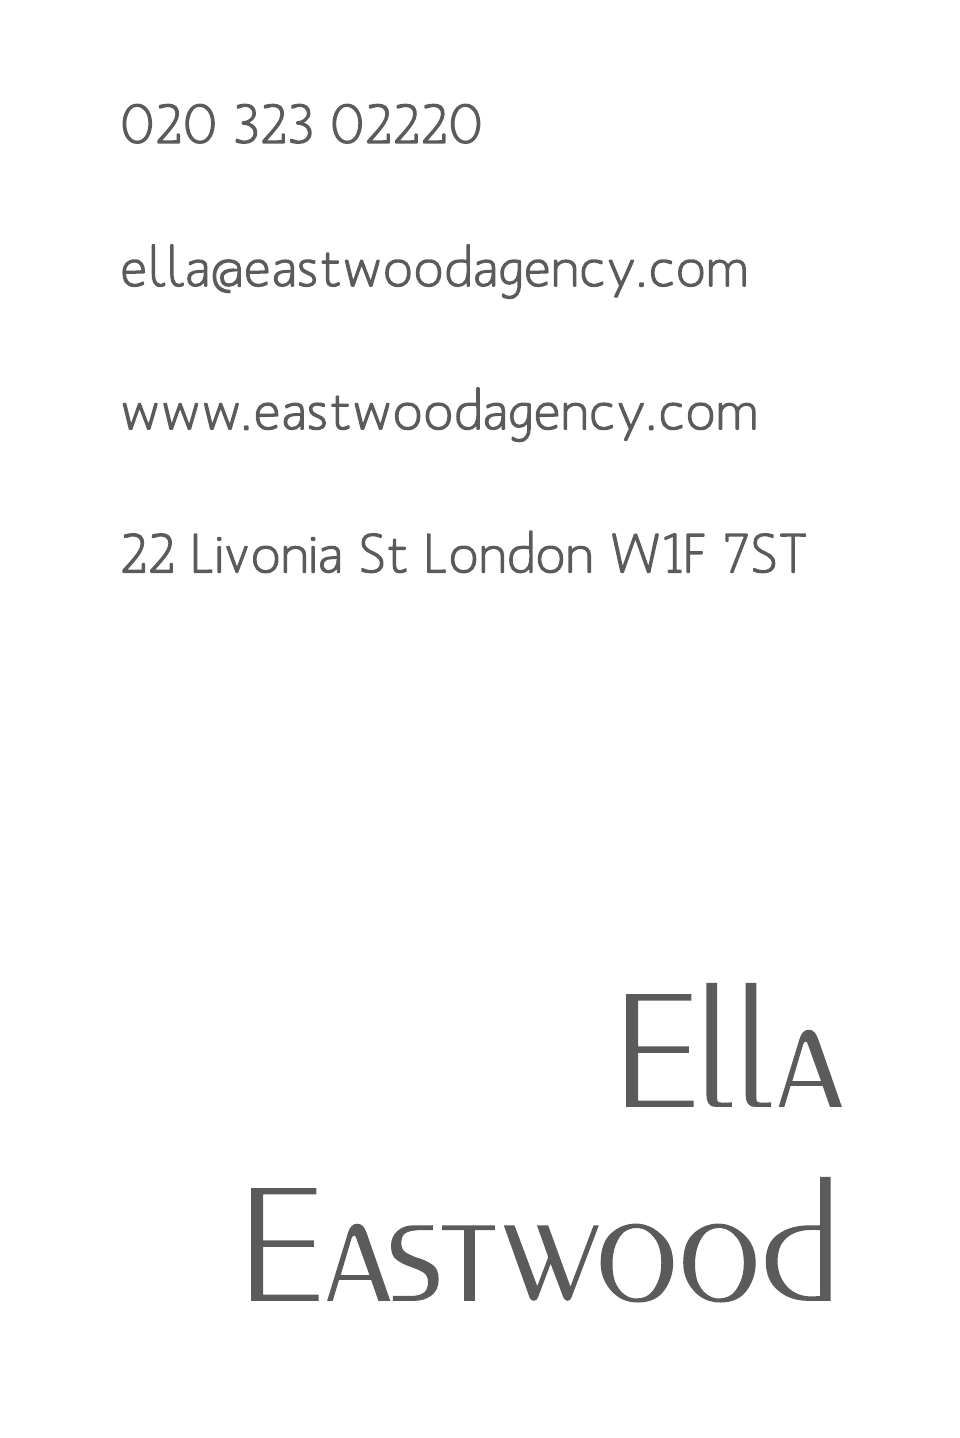 Eastwood Business Cards Ultra-Twin Foiled   Design, proof and buy online   Personalised Stationery